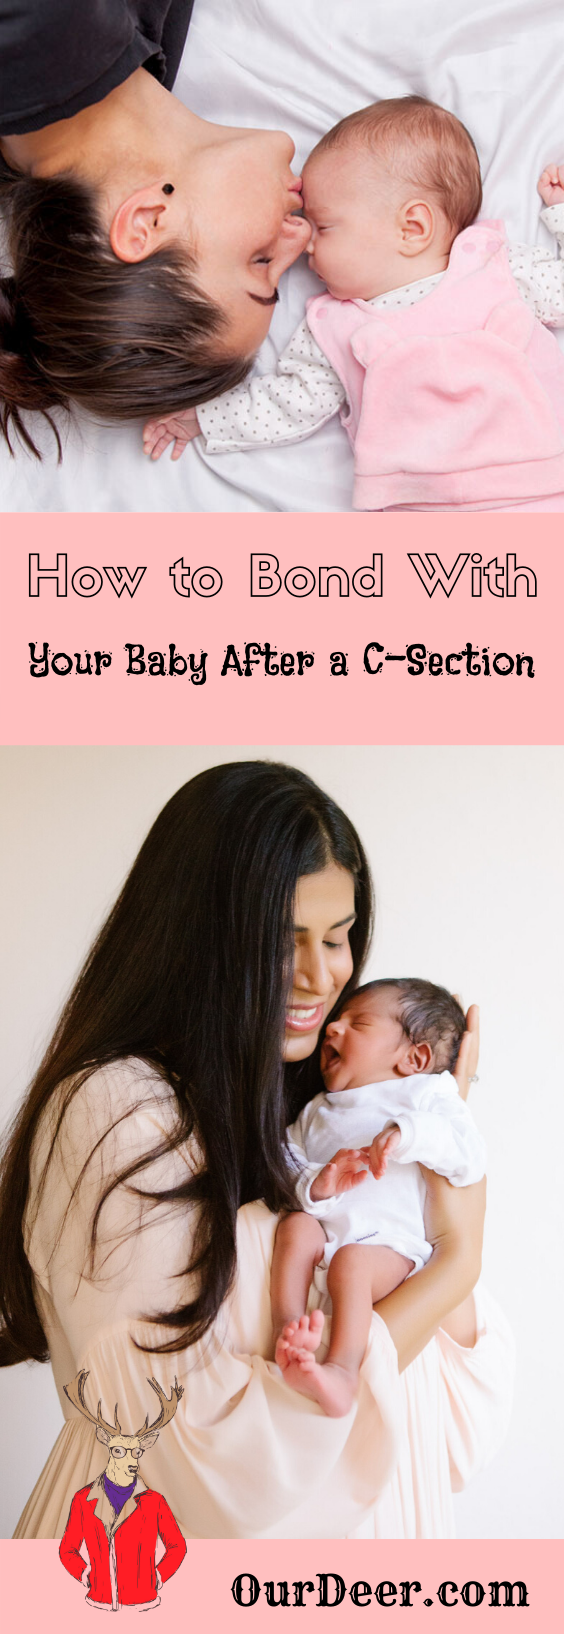 How To Bond With Your Baby After A C-Section